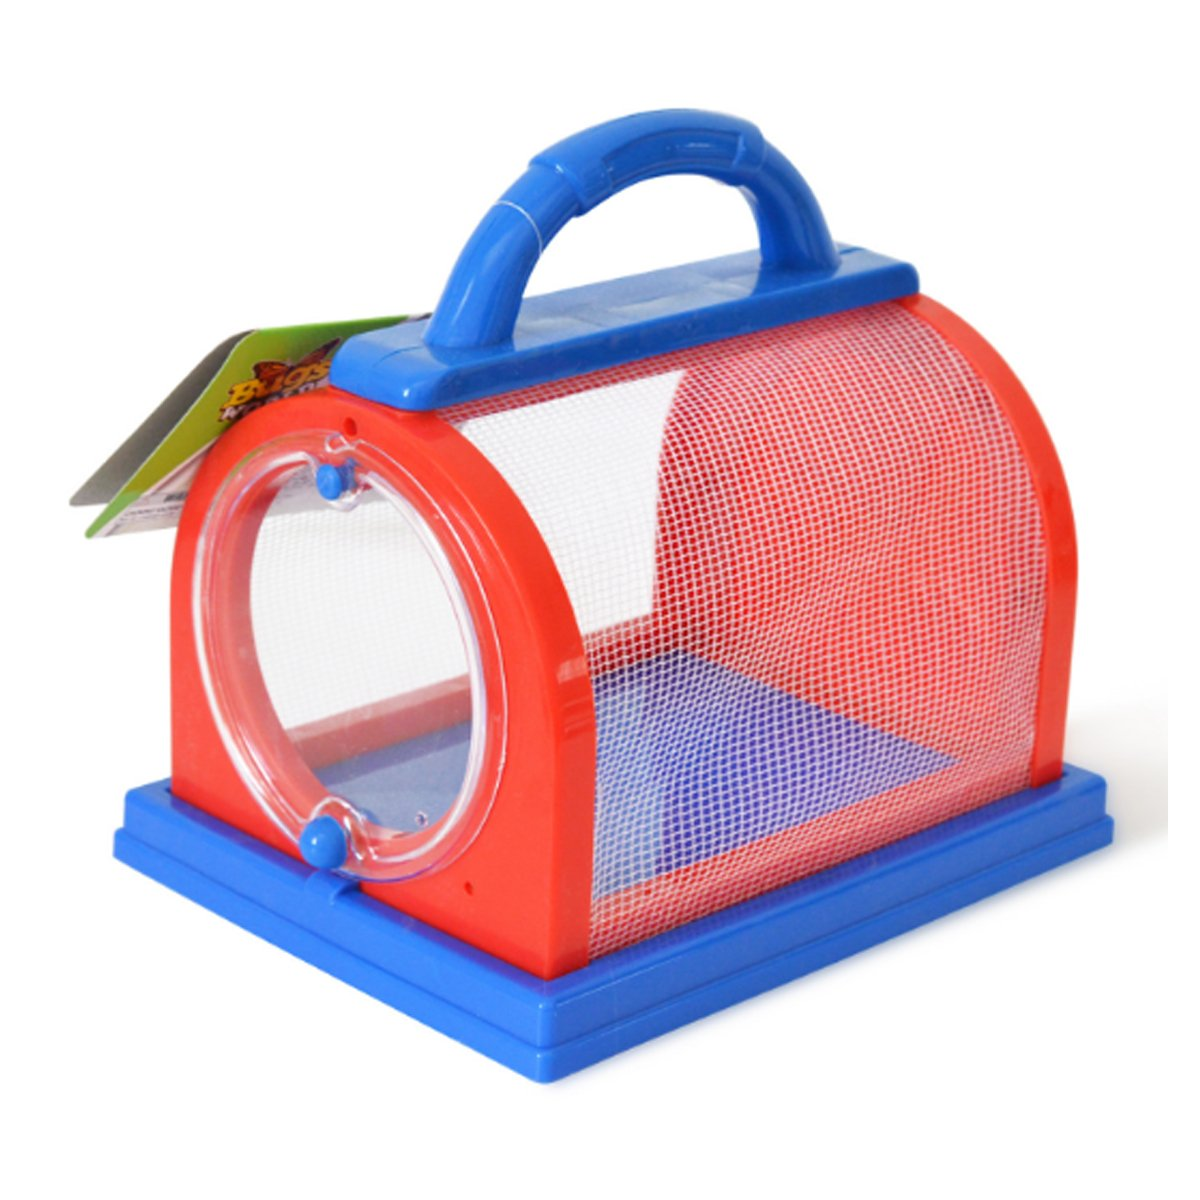 Adventure Magnifier Backyard Nature Exploration Tool Educational Toys Millya Kids Bug Insect Catchers Collection and Viewer Insect Microscope